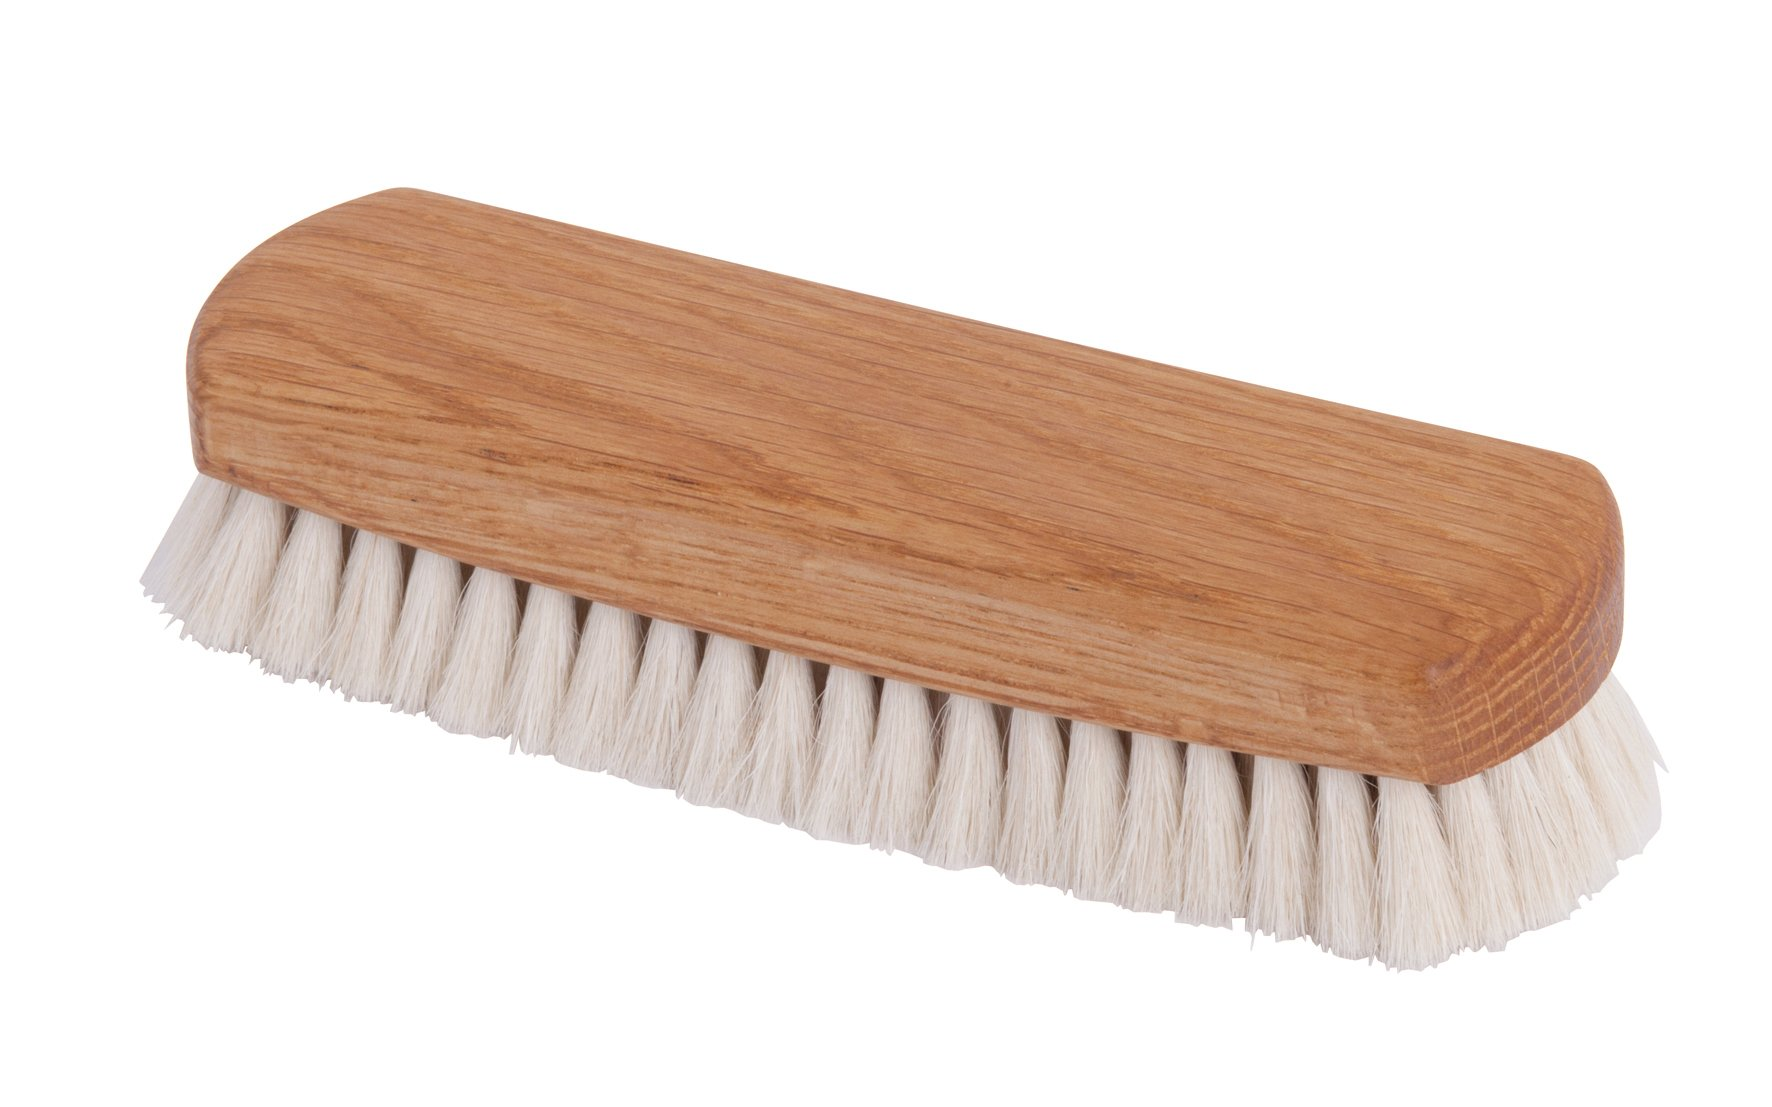 Redecker Goat Hair Shoe Shine Brush with Oiled Oakwood Handle, 6-1/4-Inches, Light